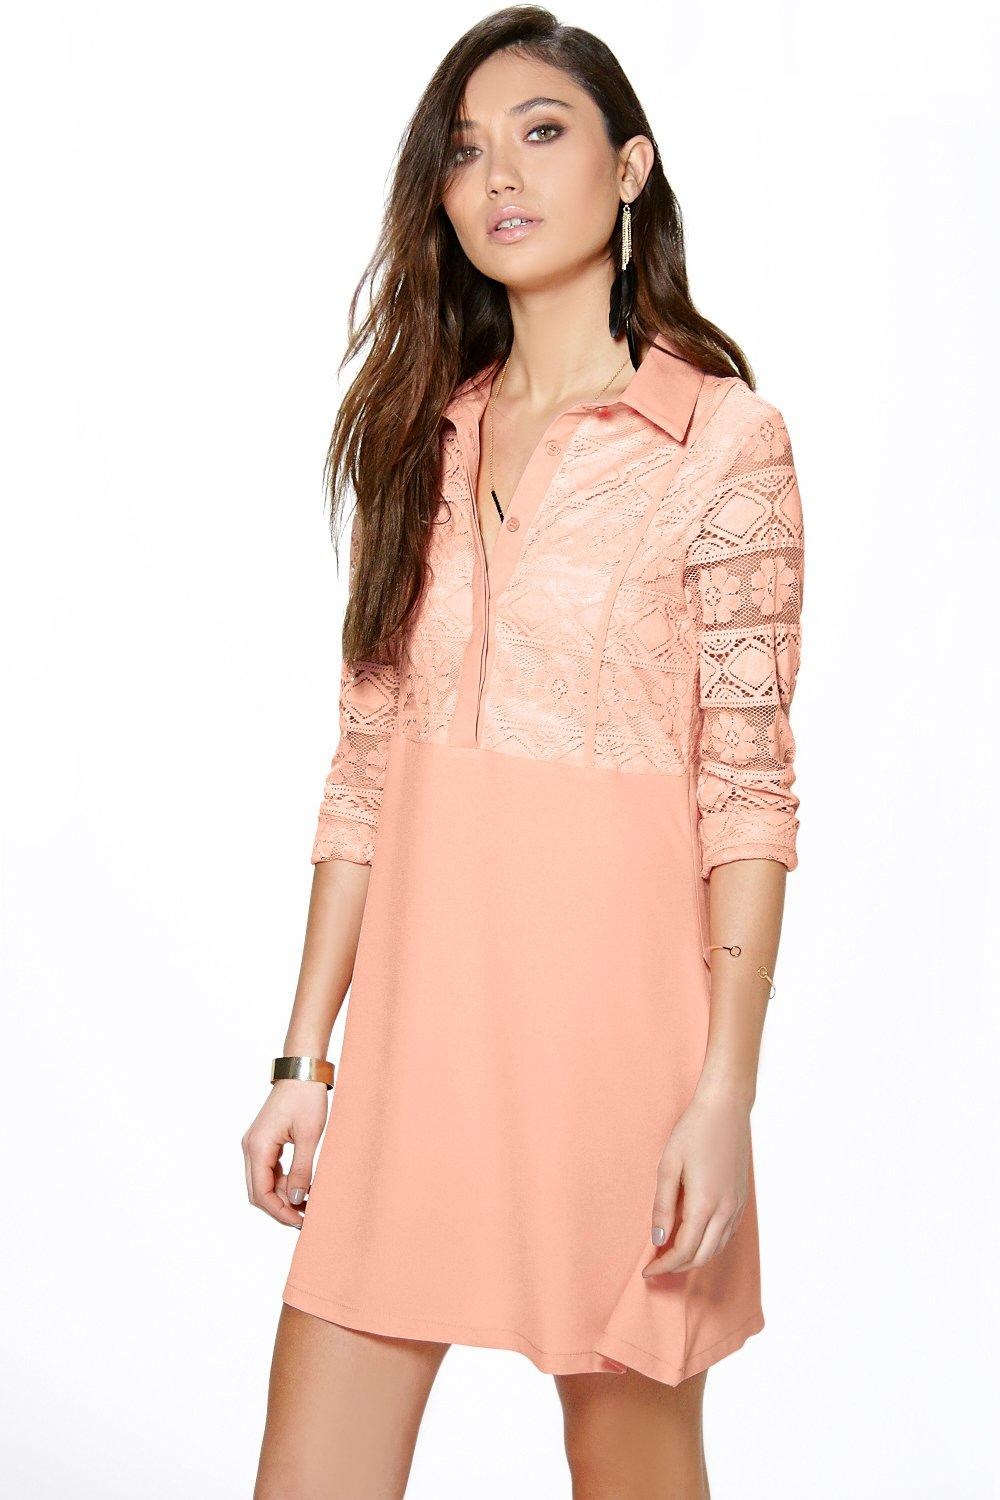 Christianna A-Line Lace Skater Dress